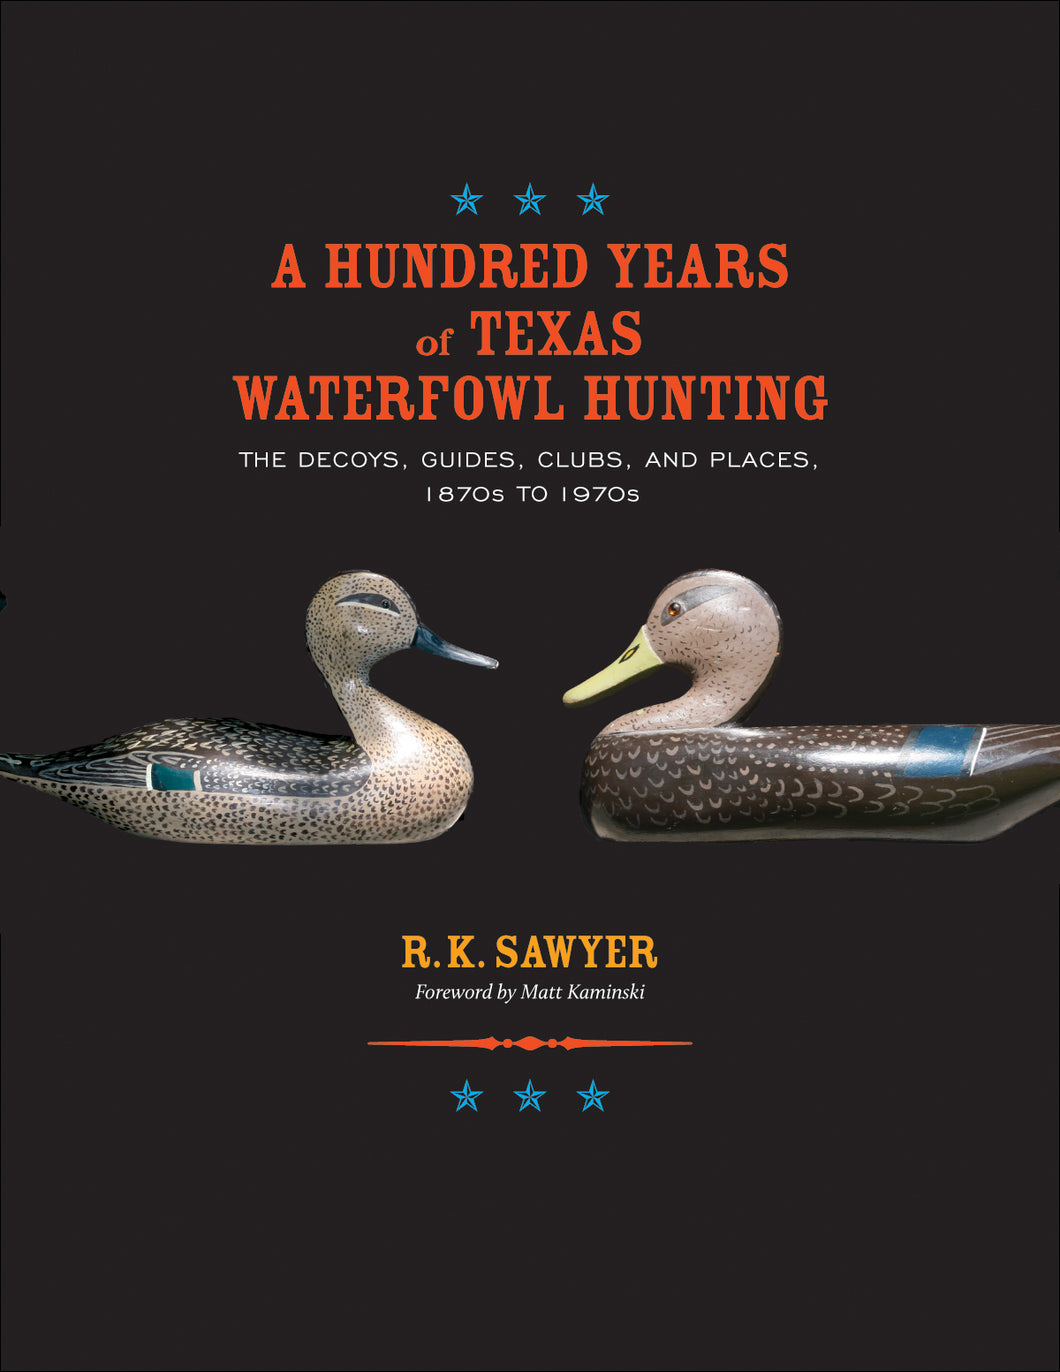 A Hundred Years of Texas Waterfowl Hunting (2012)